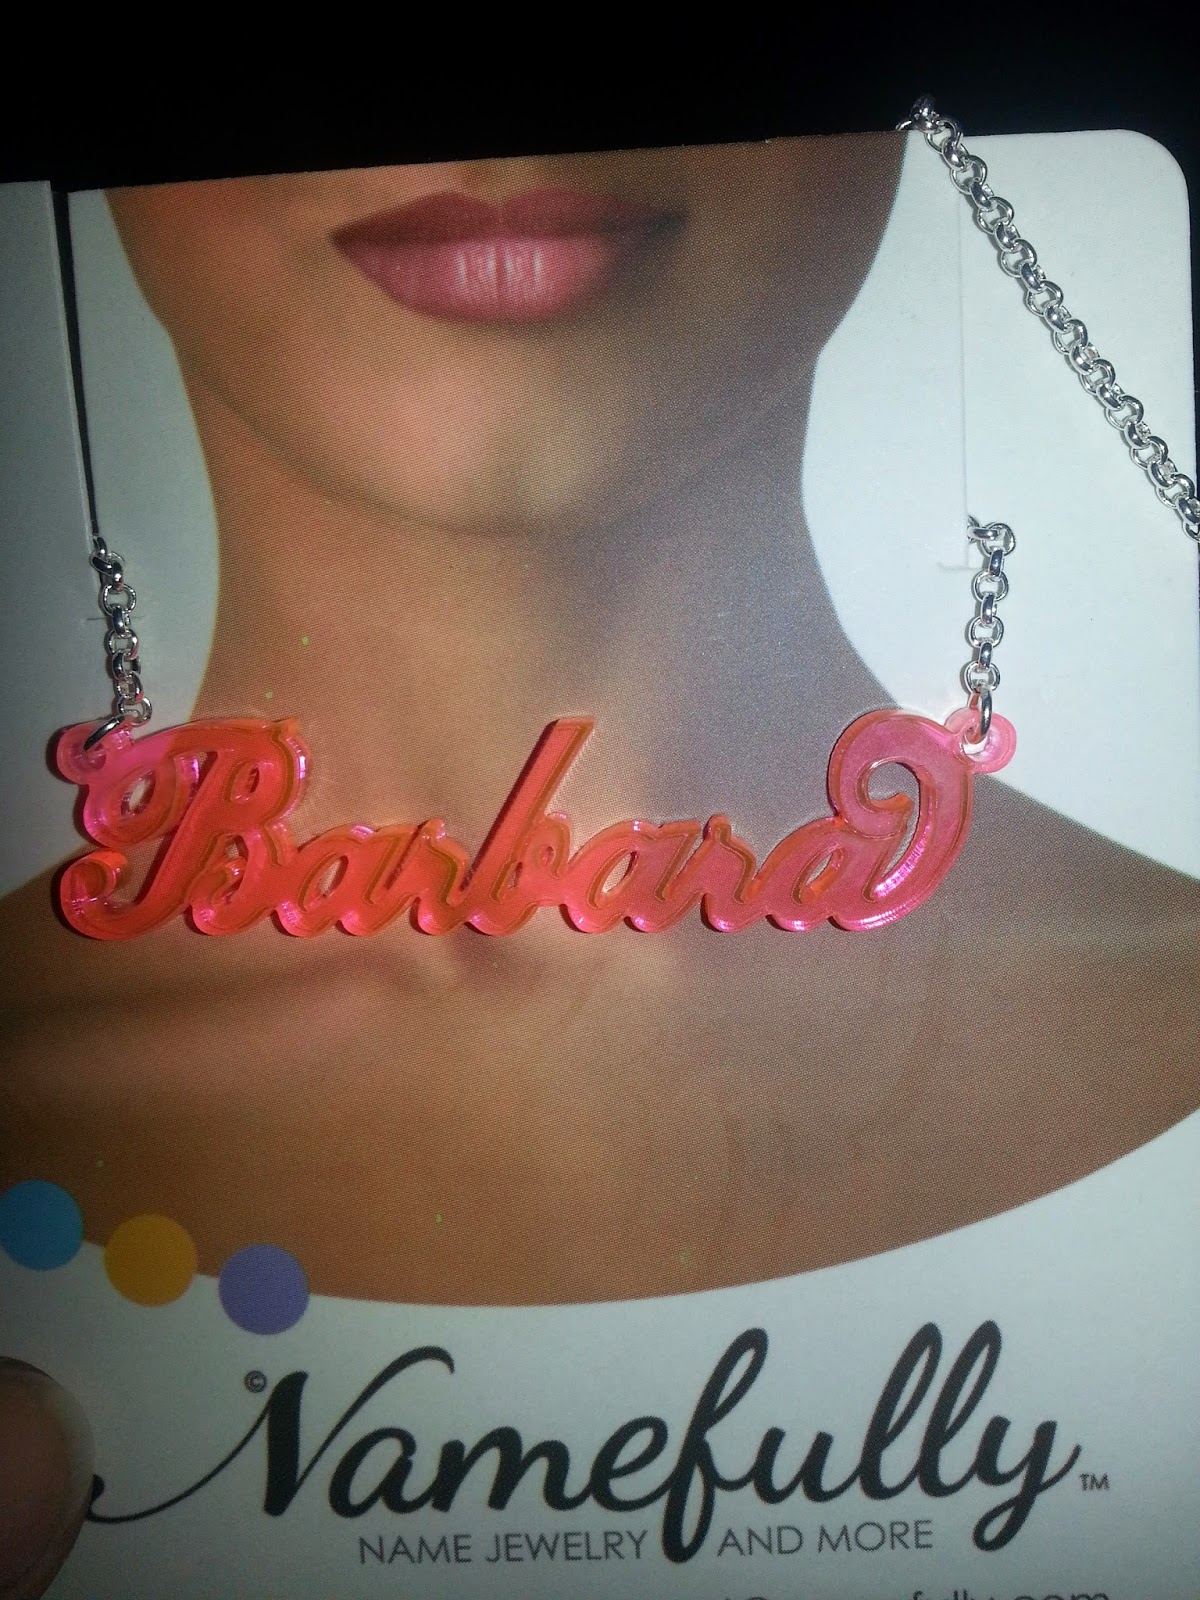 http://ramblingsofcassie.blogspot.com/2014/12/personalized-necklace.html